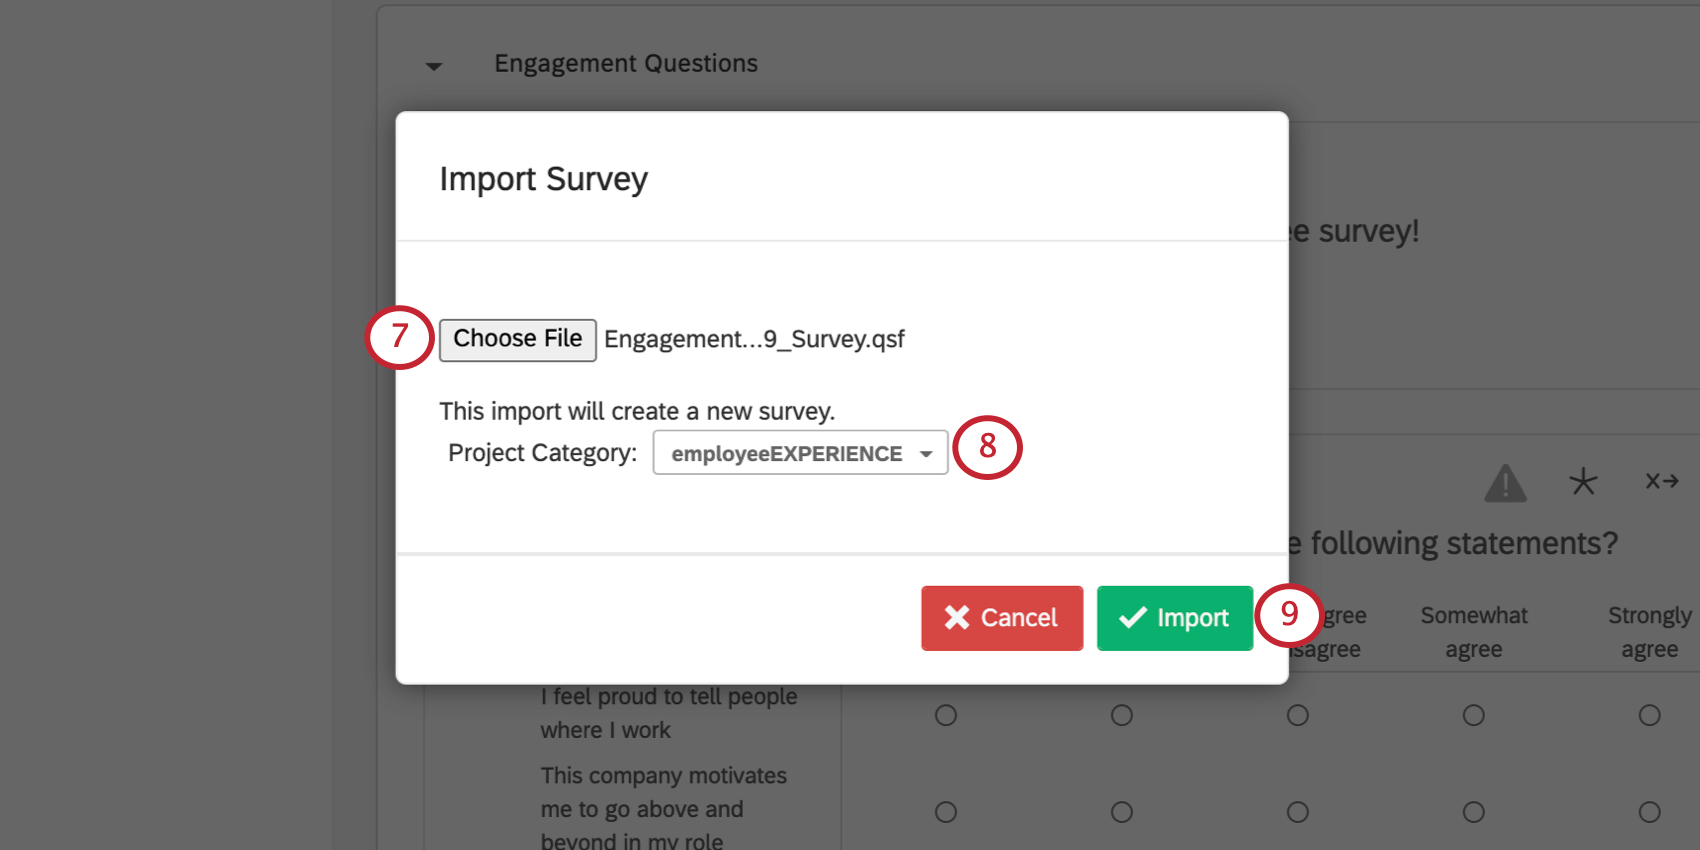 The Choose File button on the Import Survey window